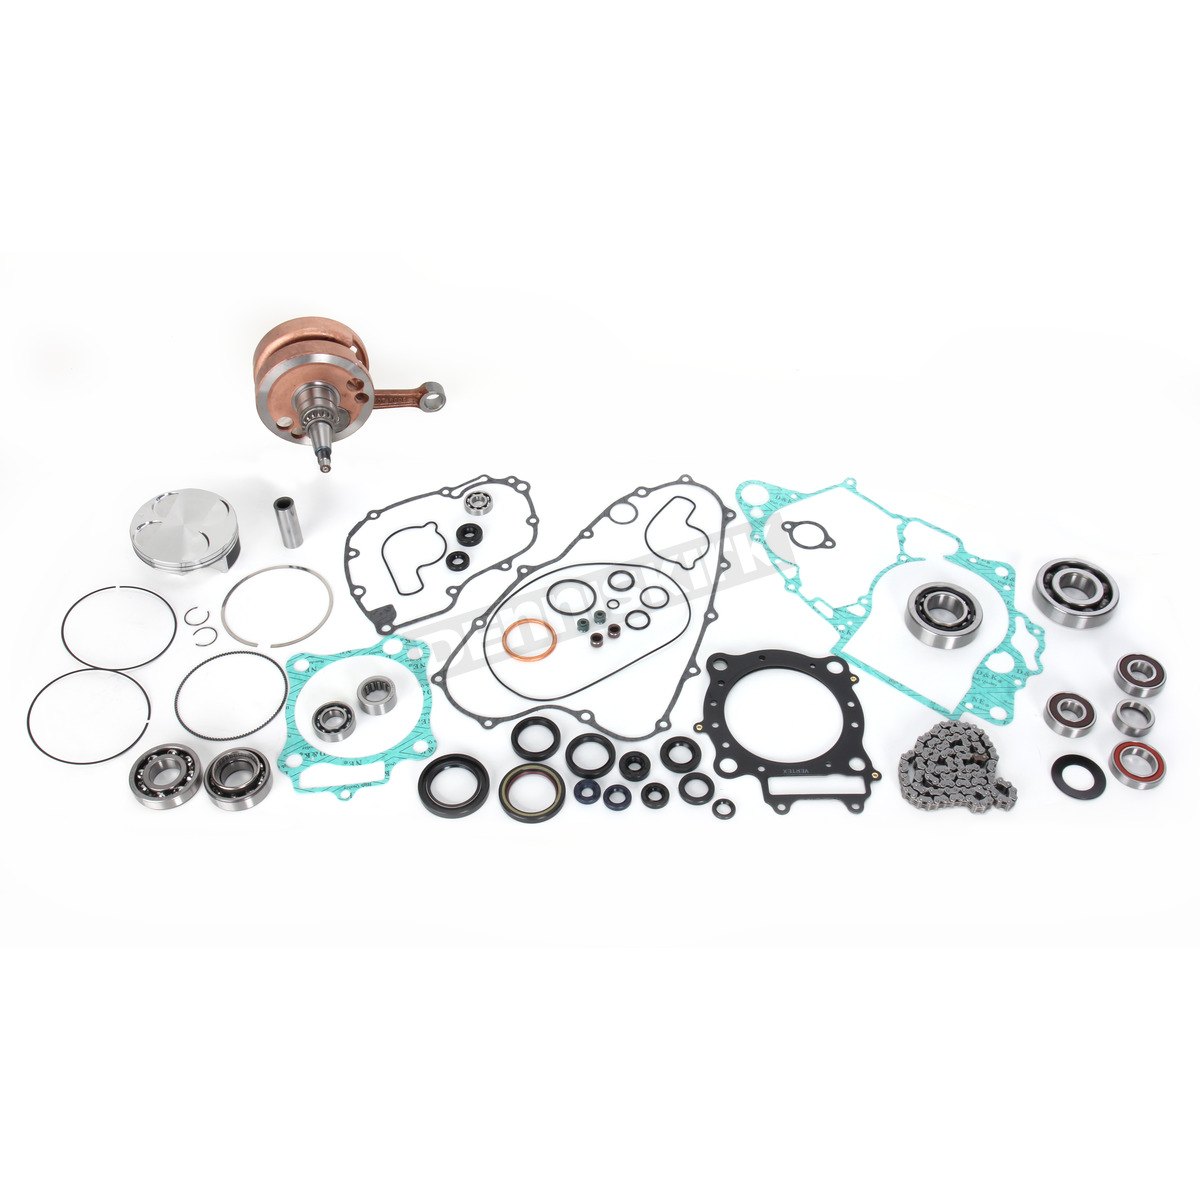 Wrench Rabbit Complete Rebuild Kit 96mm Bore